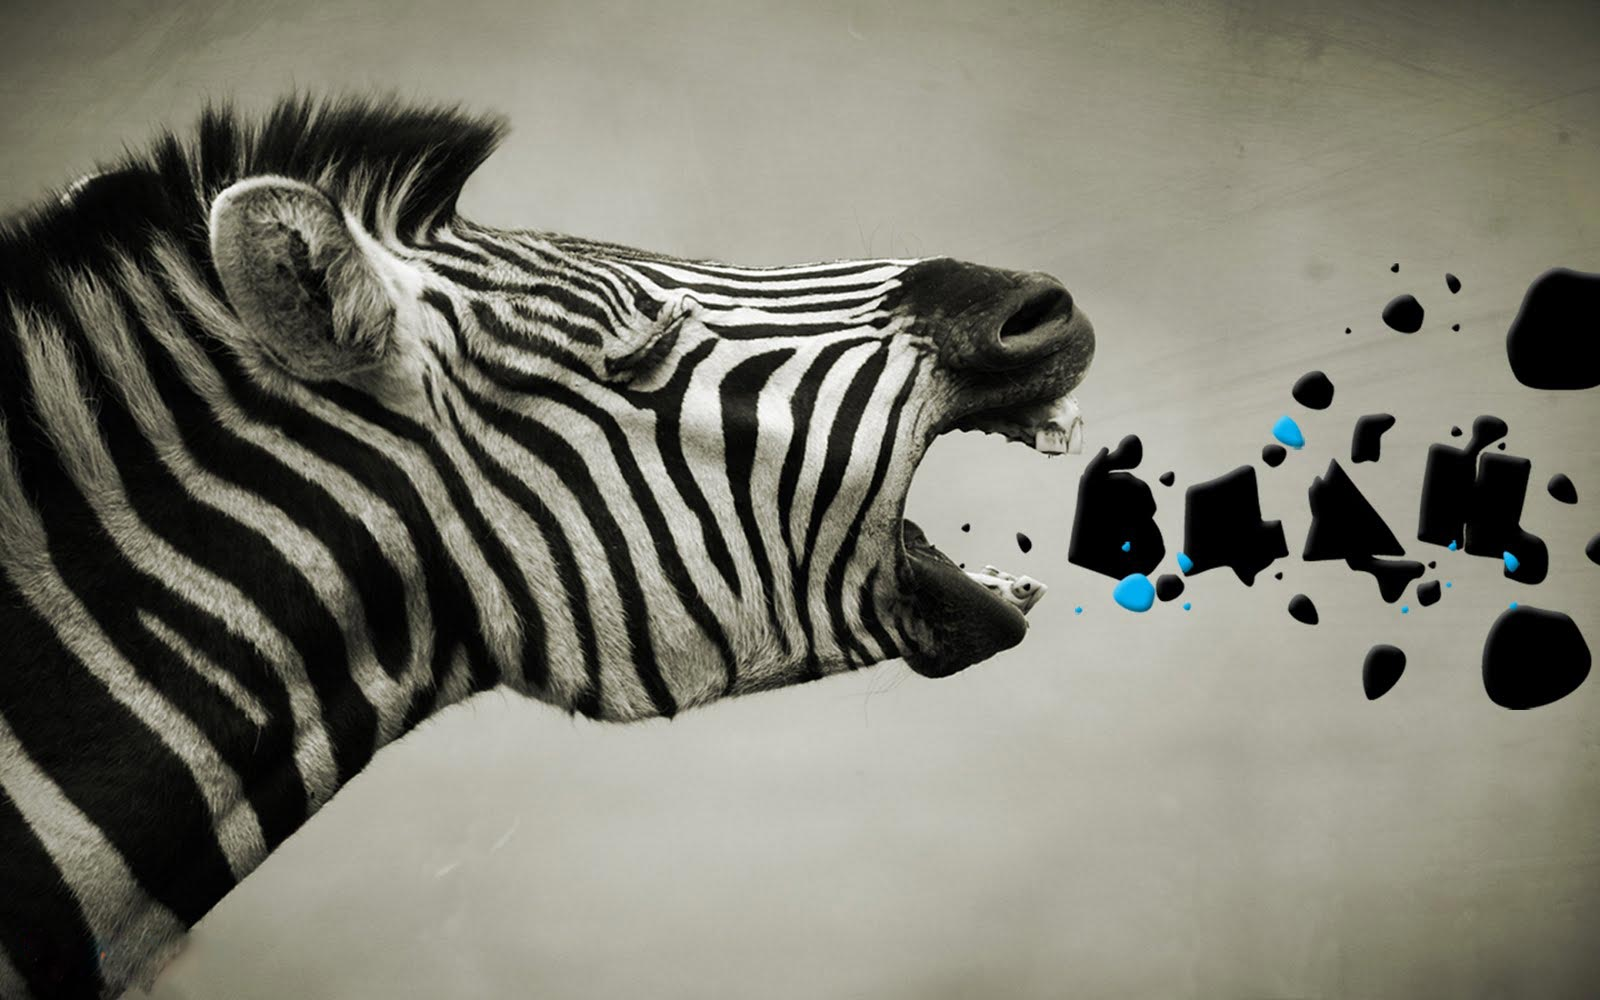 Free Zebra Wallpaper   1600x1000